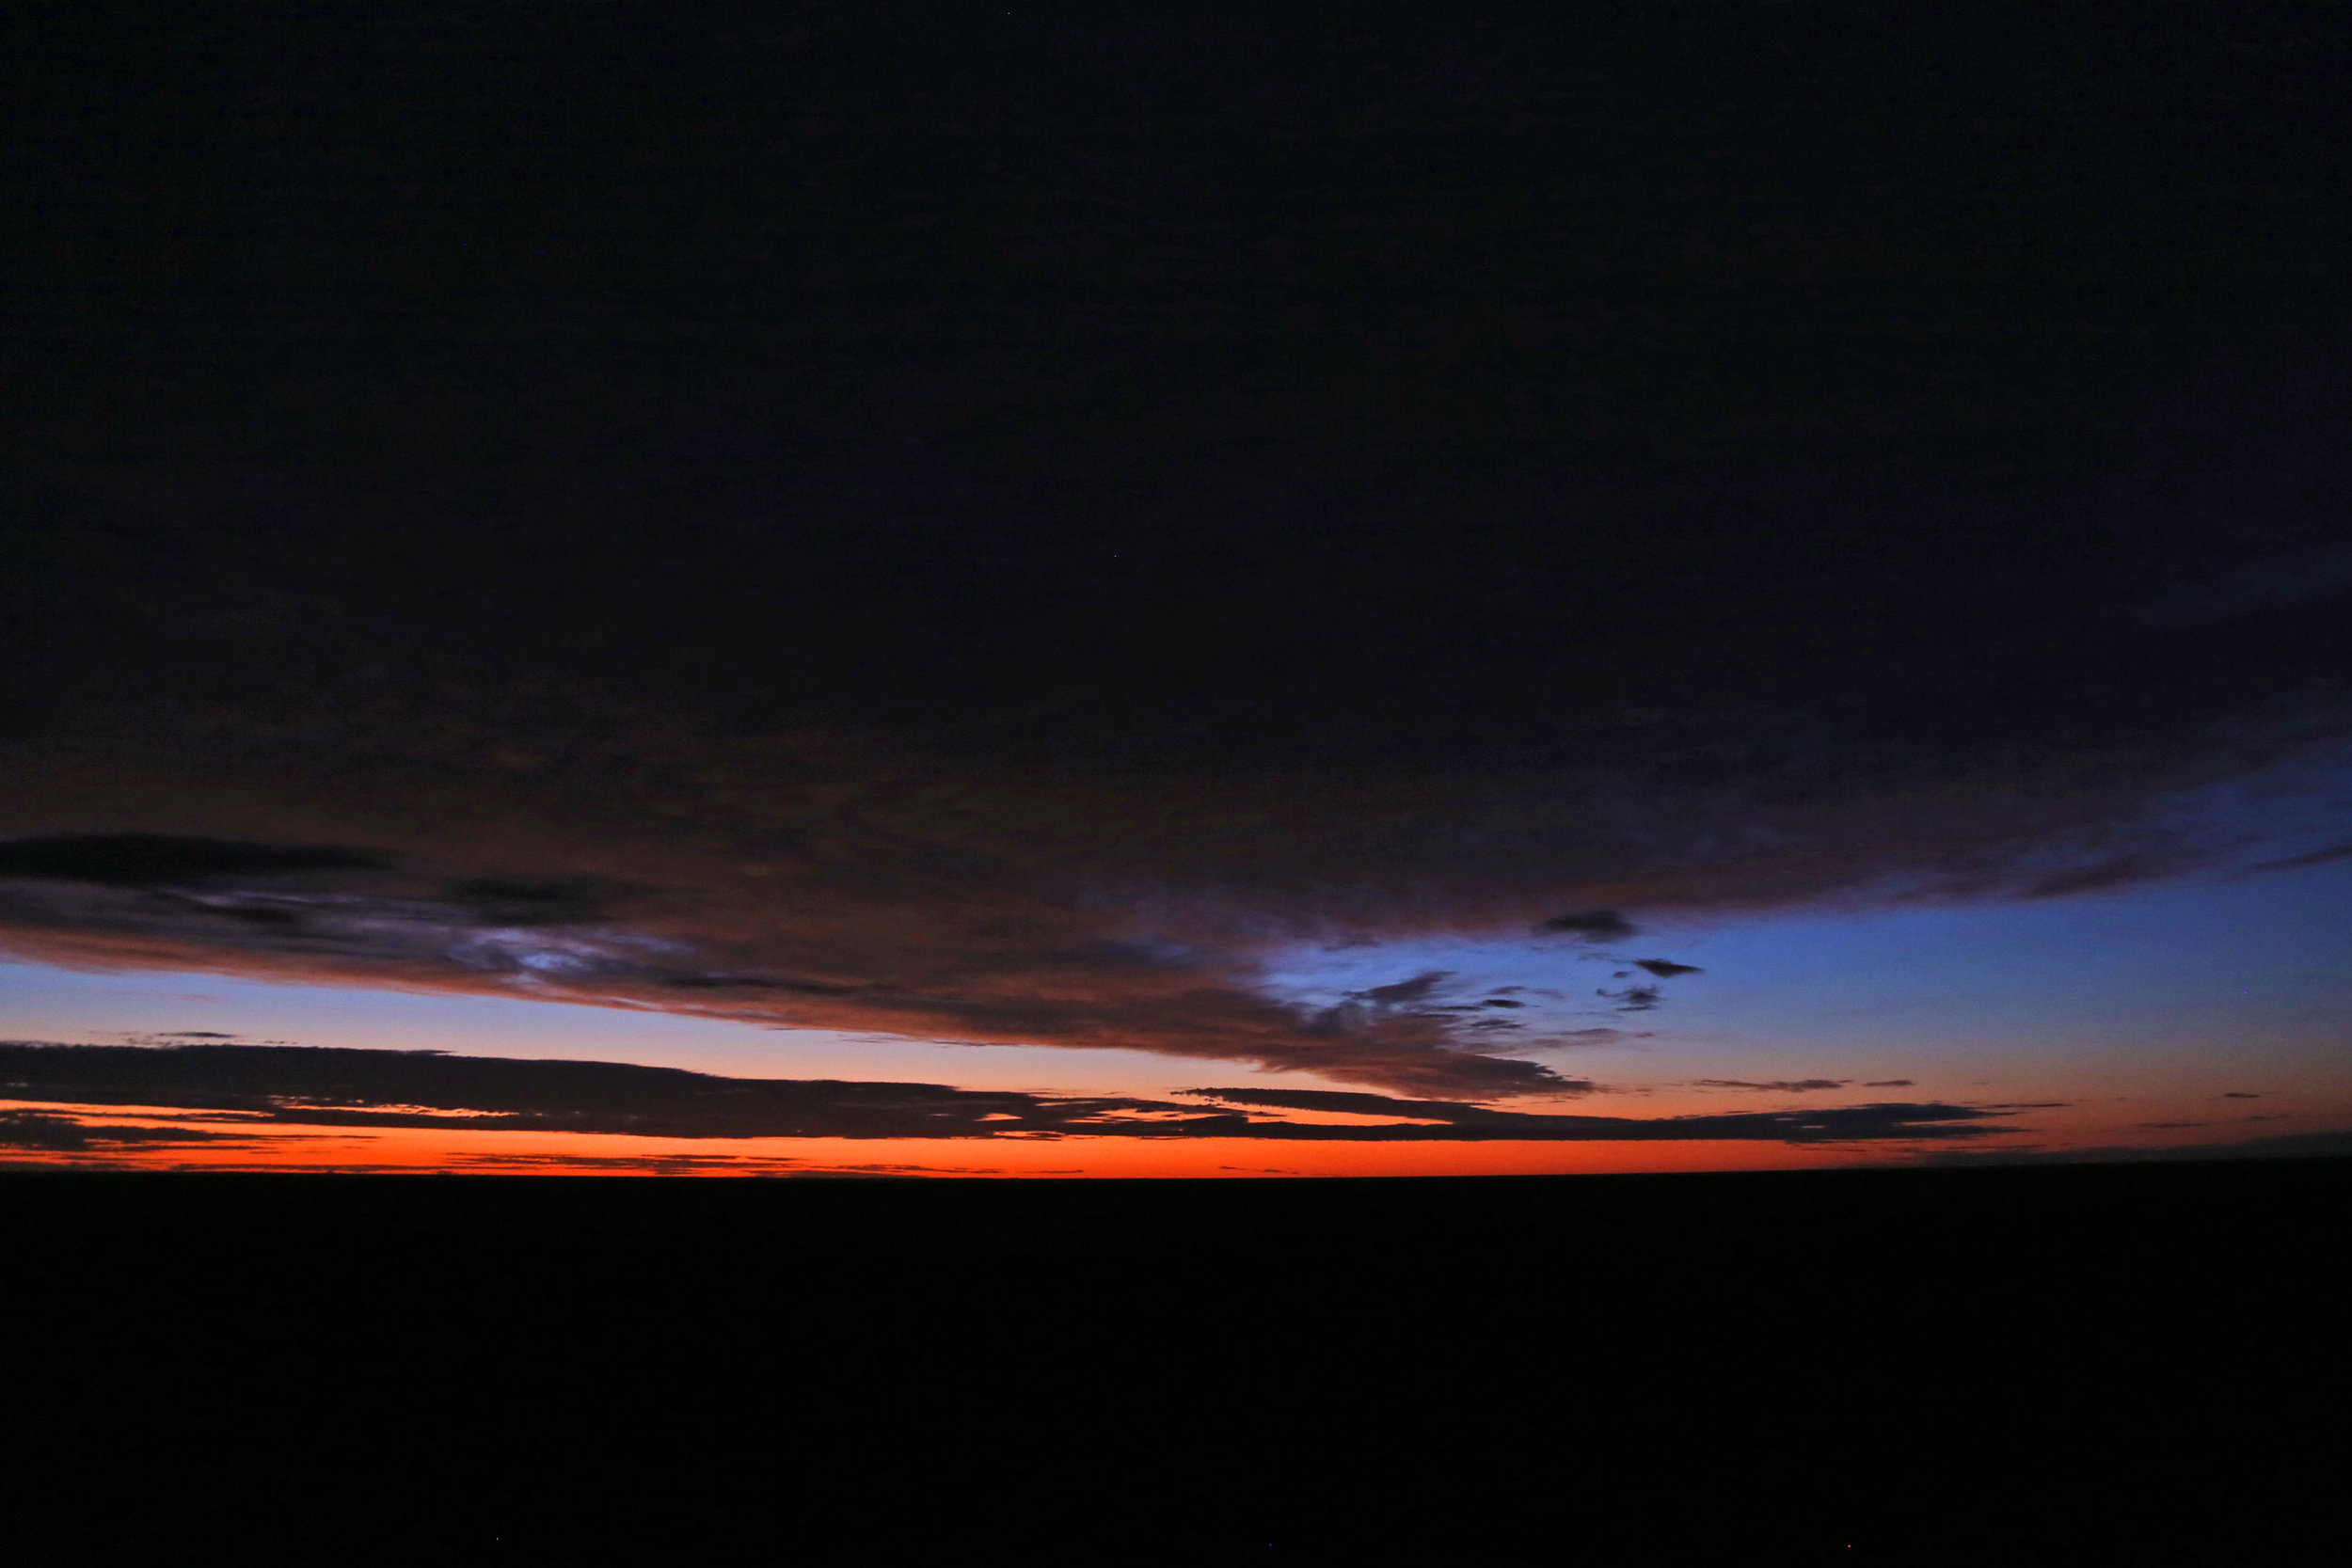 The final light of the day casts an ephemeral glow across the horizon.